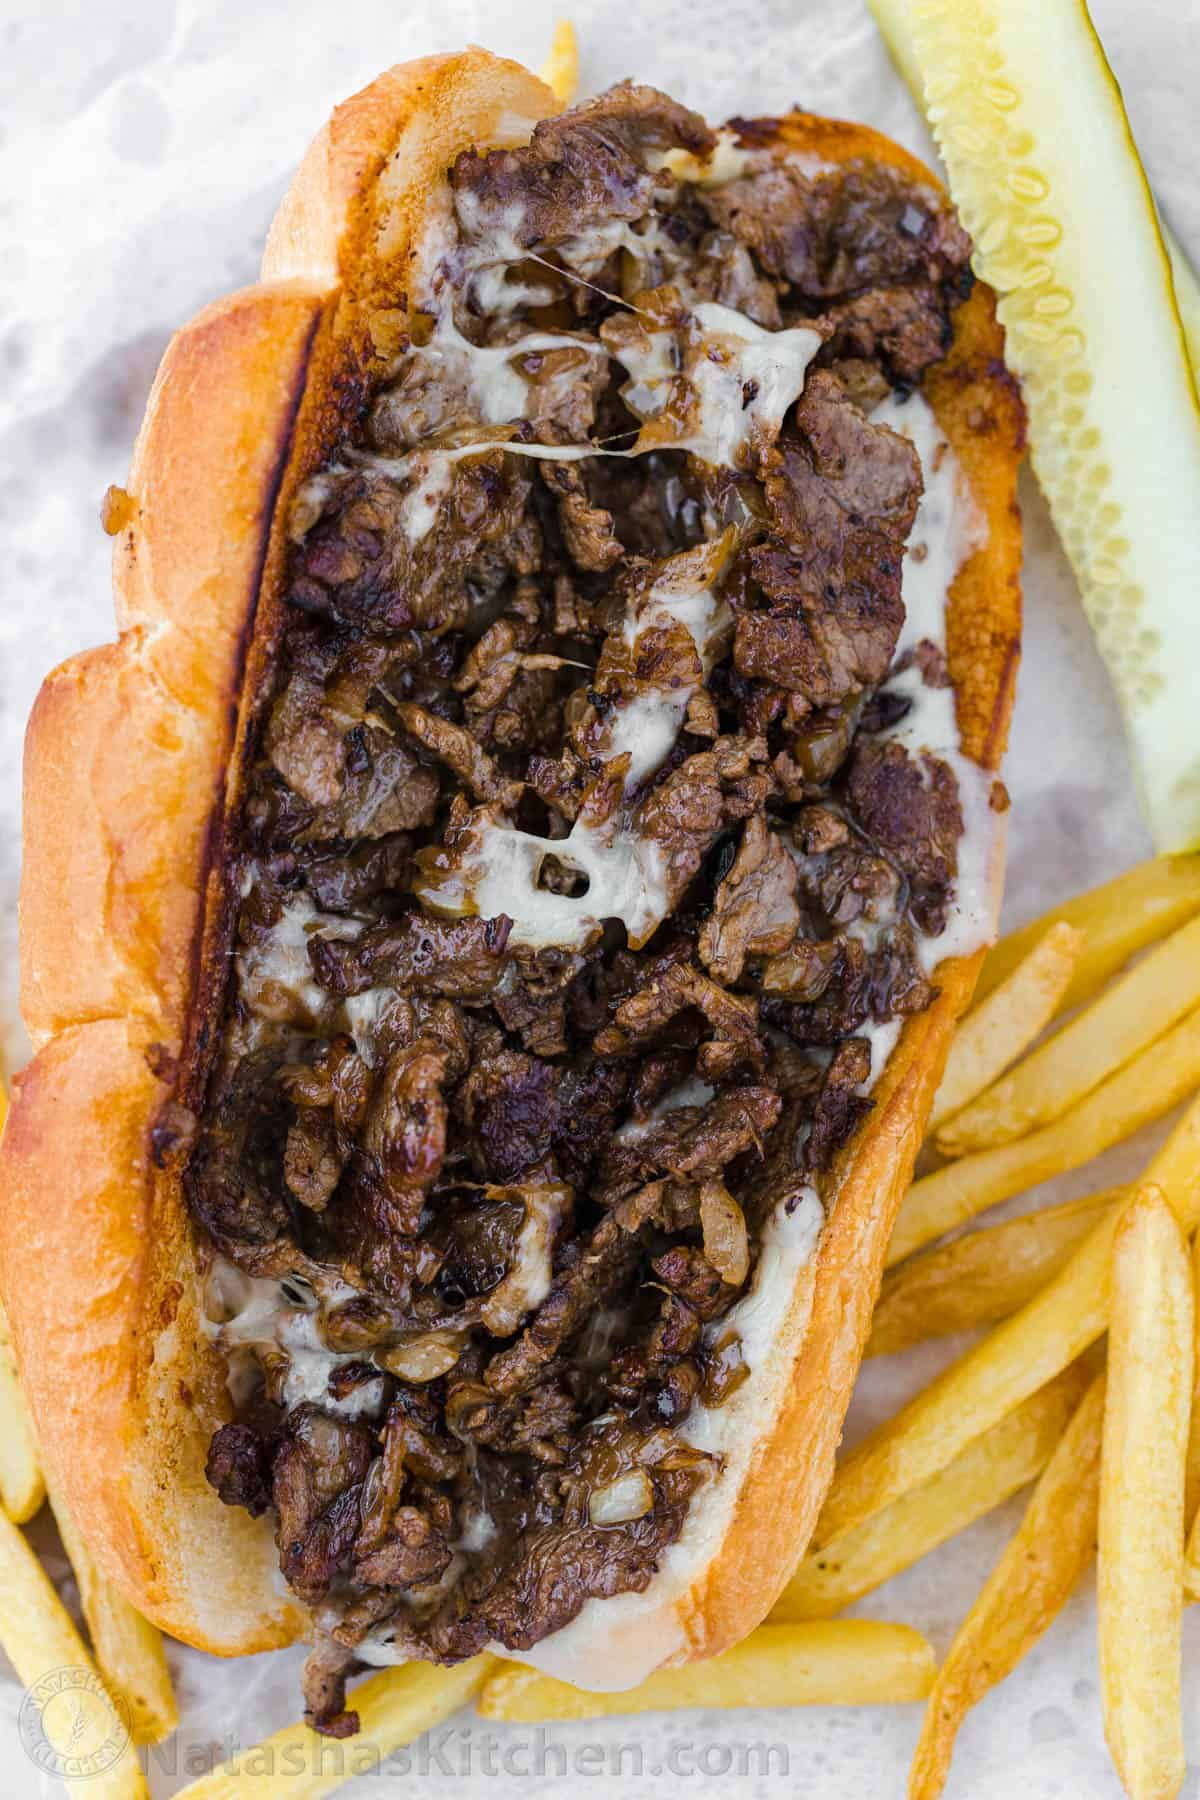 Philly Cheesesteak with tender ribeye steak, melted provolone, and caramelized onion in a garlic butter roll. Easy Philly Cheesesteak Sandwich video how-to.